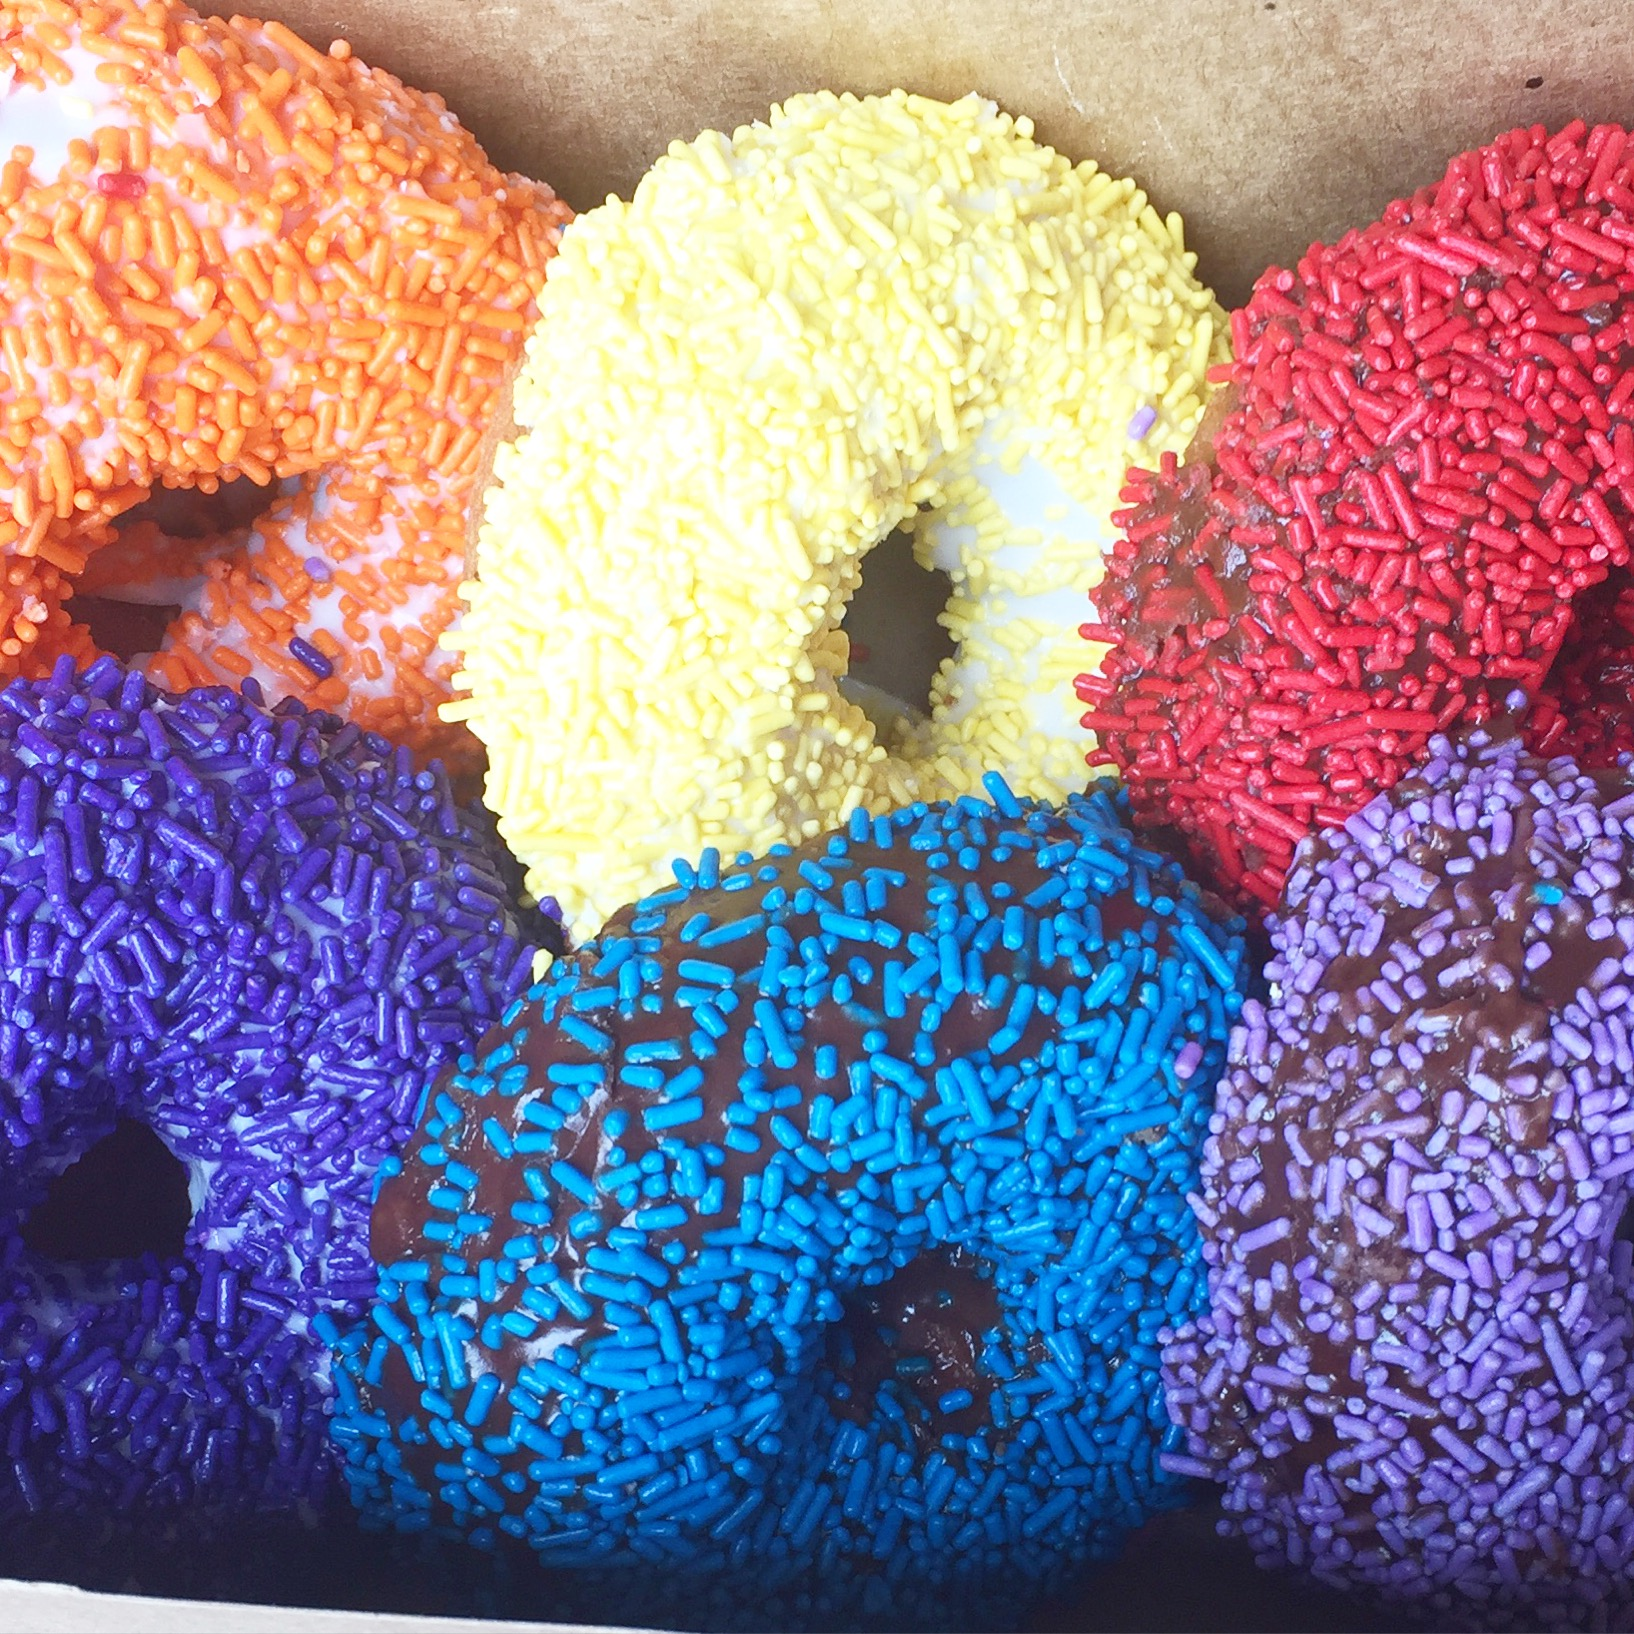 Our last visit to Hurts Donut Co